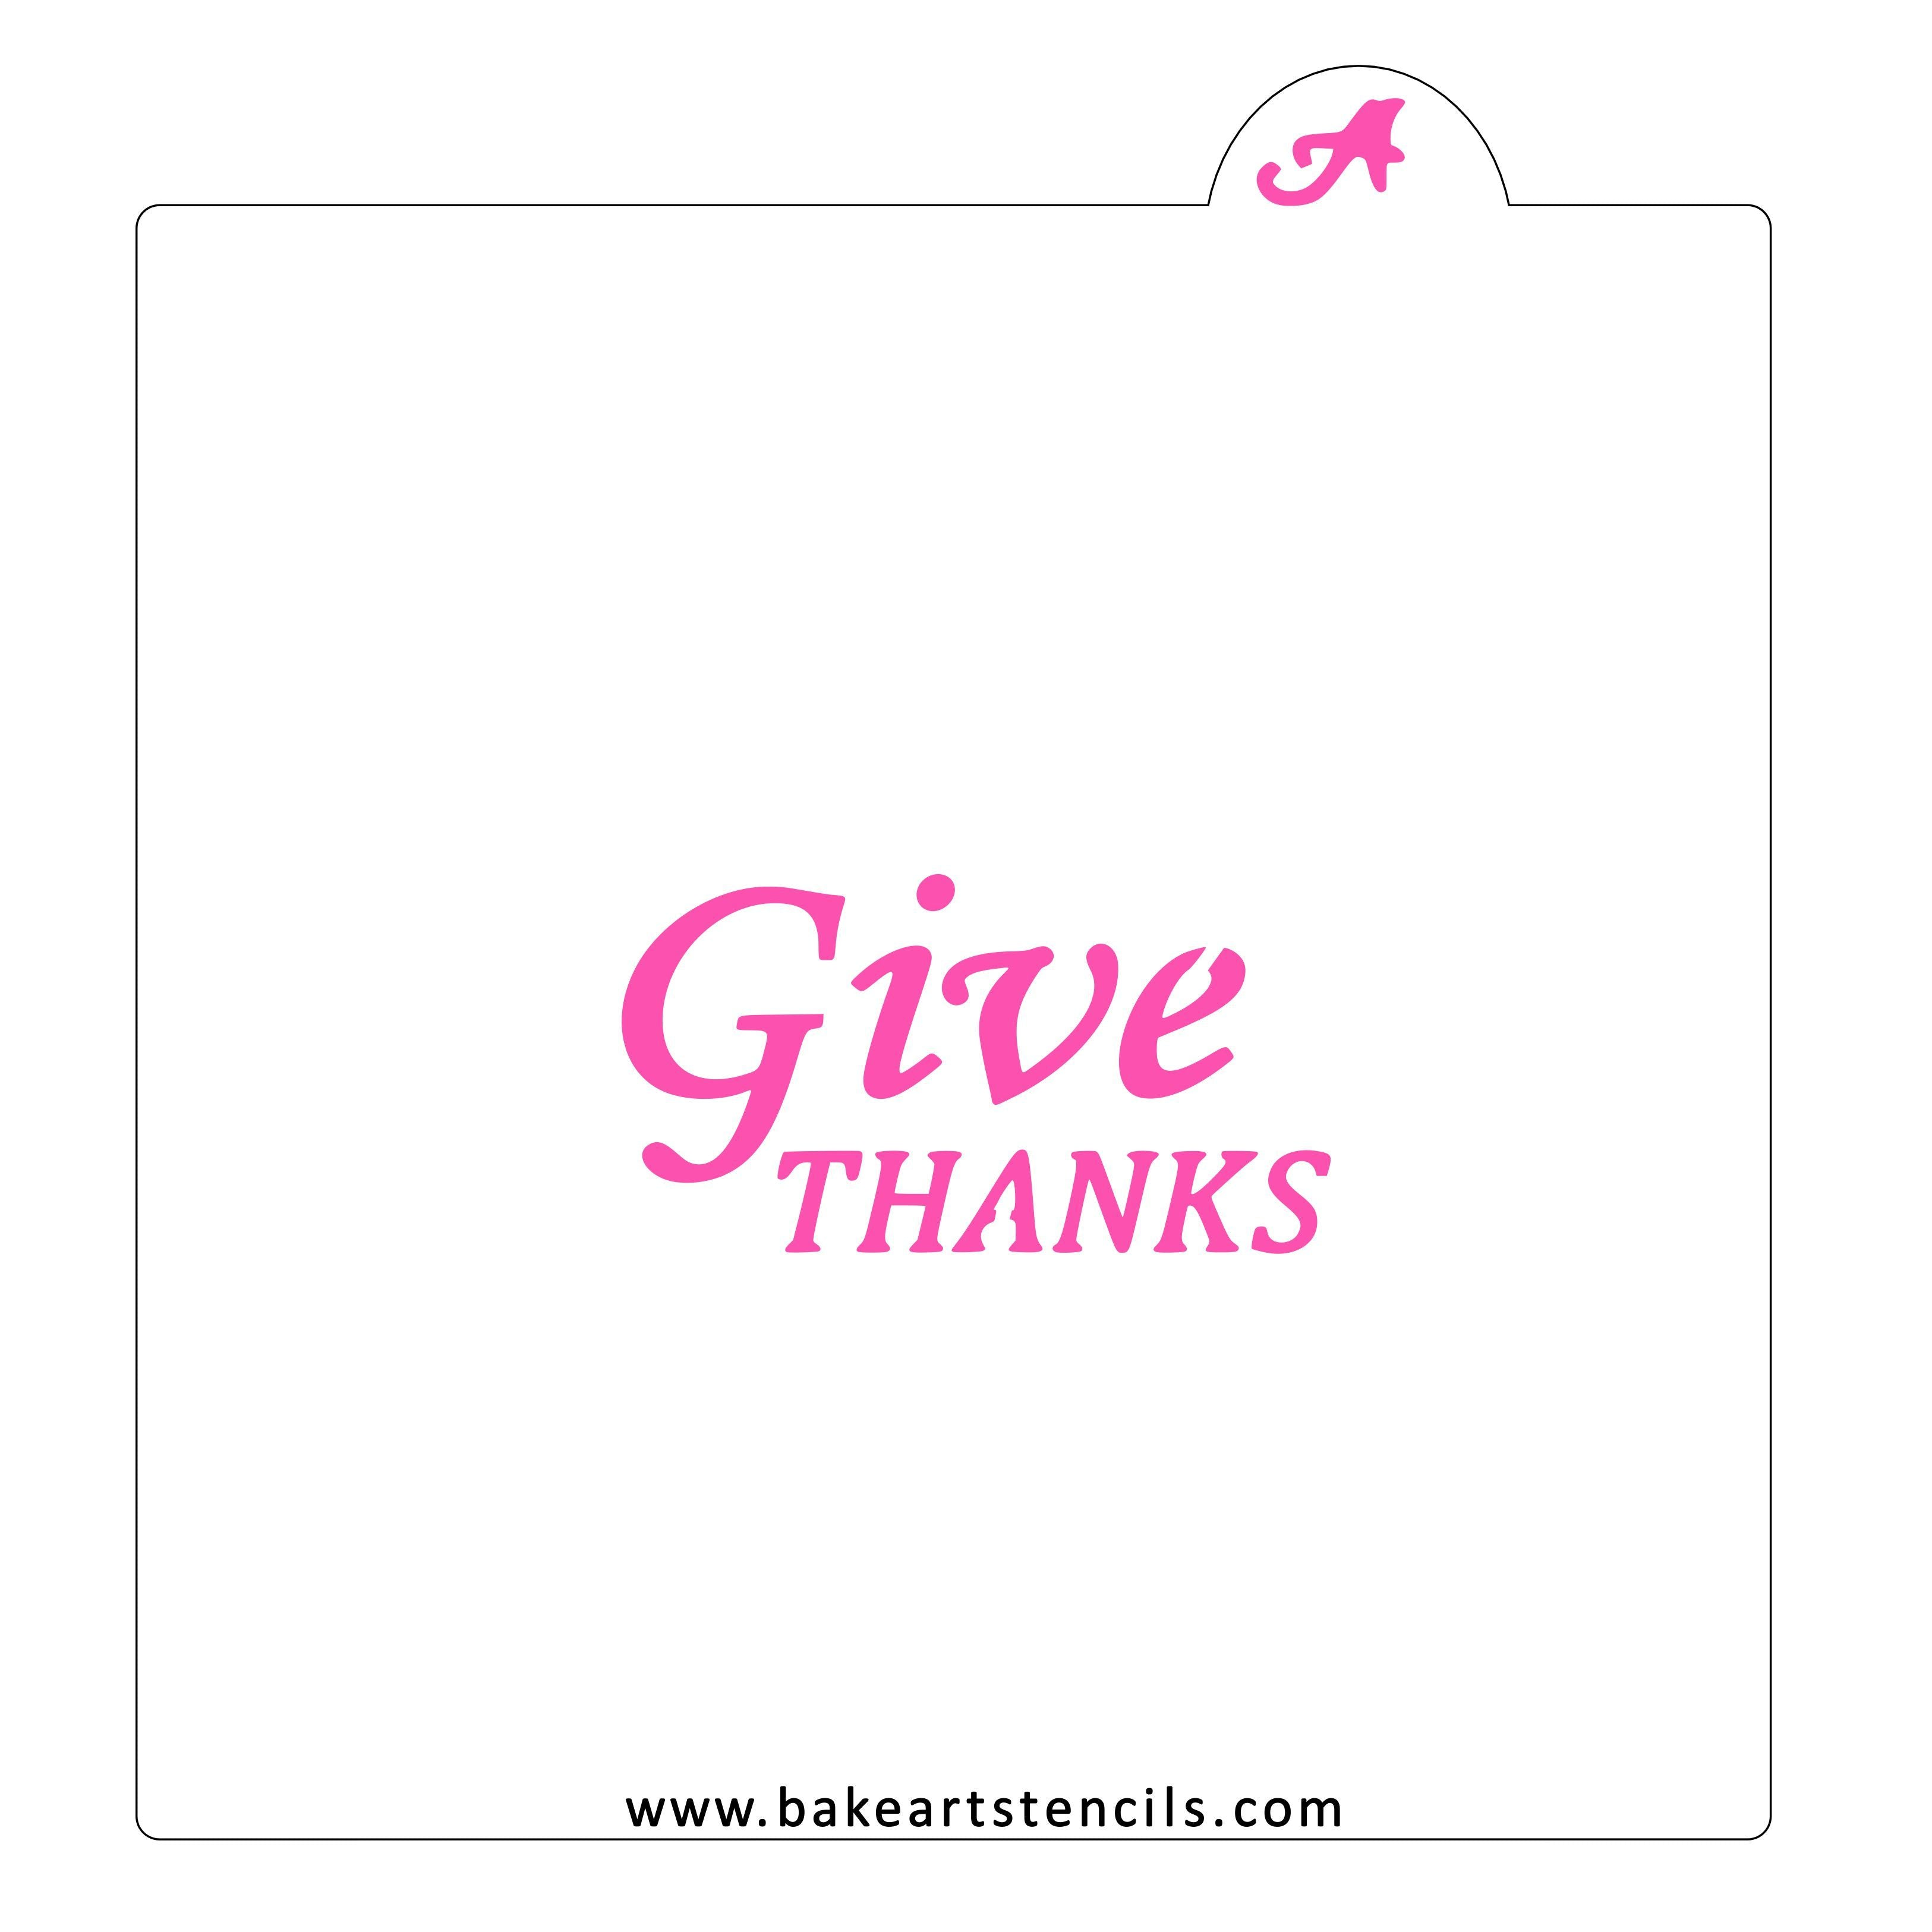 art Give Thanks with a Grateful Heart food safe stencil mixed media background cookie MESH stencil Stencil cakes baking